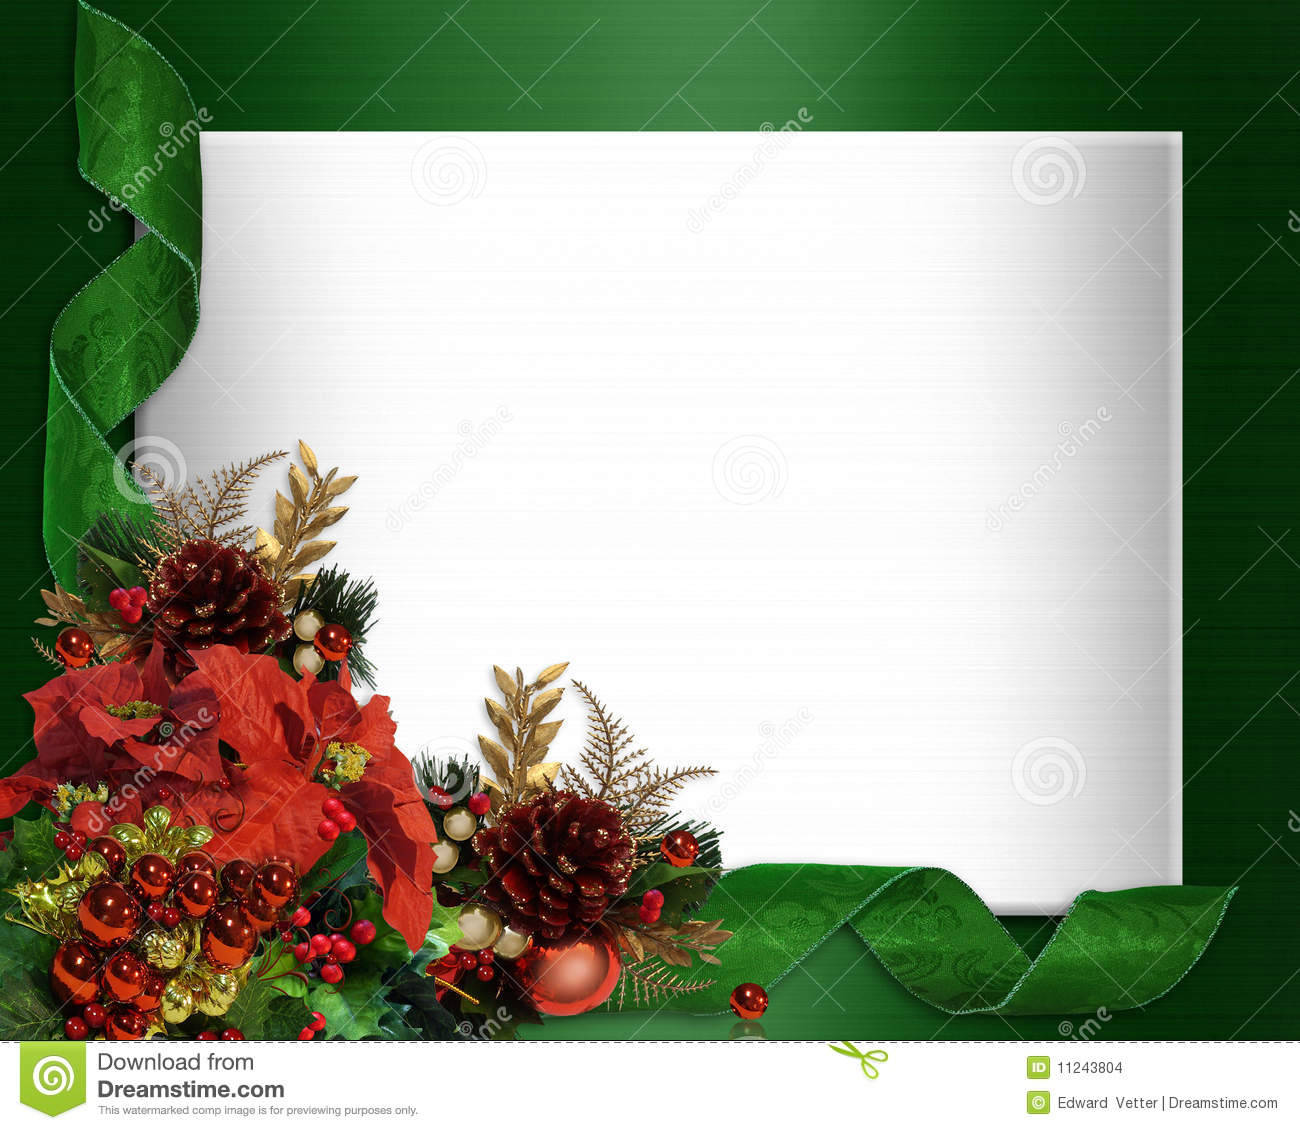 Old fashioned animated christmas cards for business motif business free animated business christmas cards choice image card design flashek Images